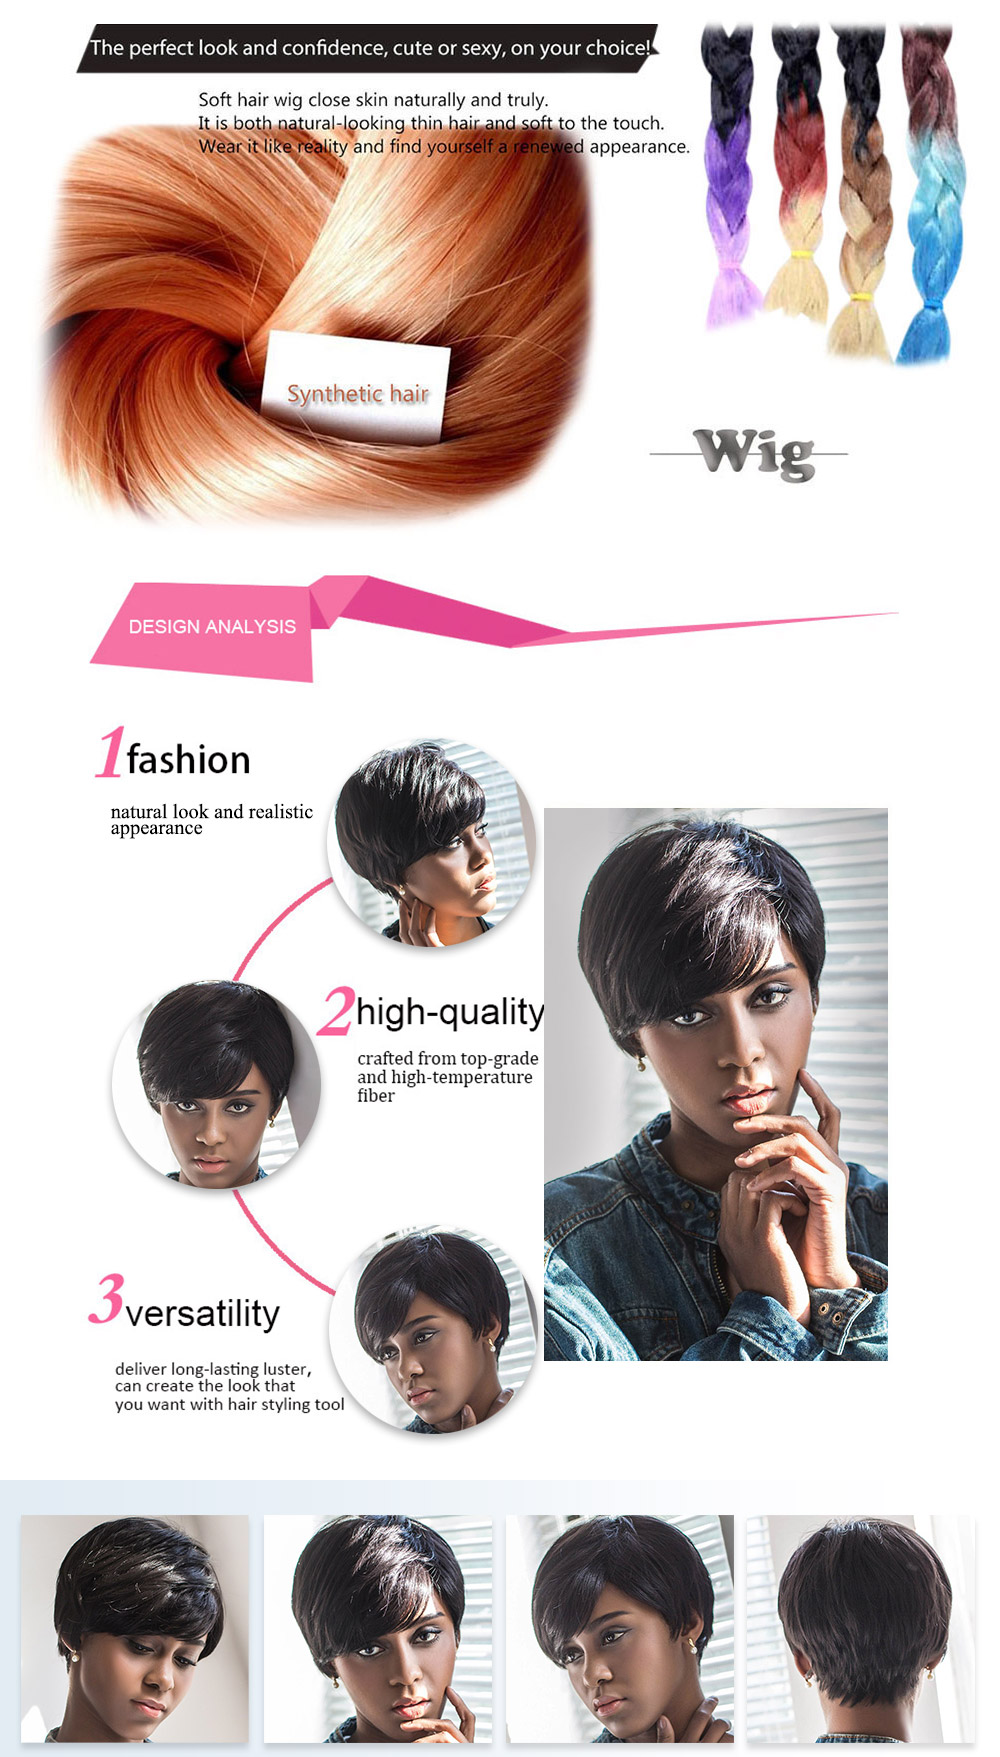 AISIHAIR Short Pixie Cutting Side Bangs Black Wigs Synthetic Hair for Women